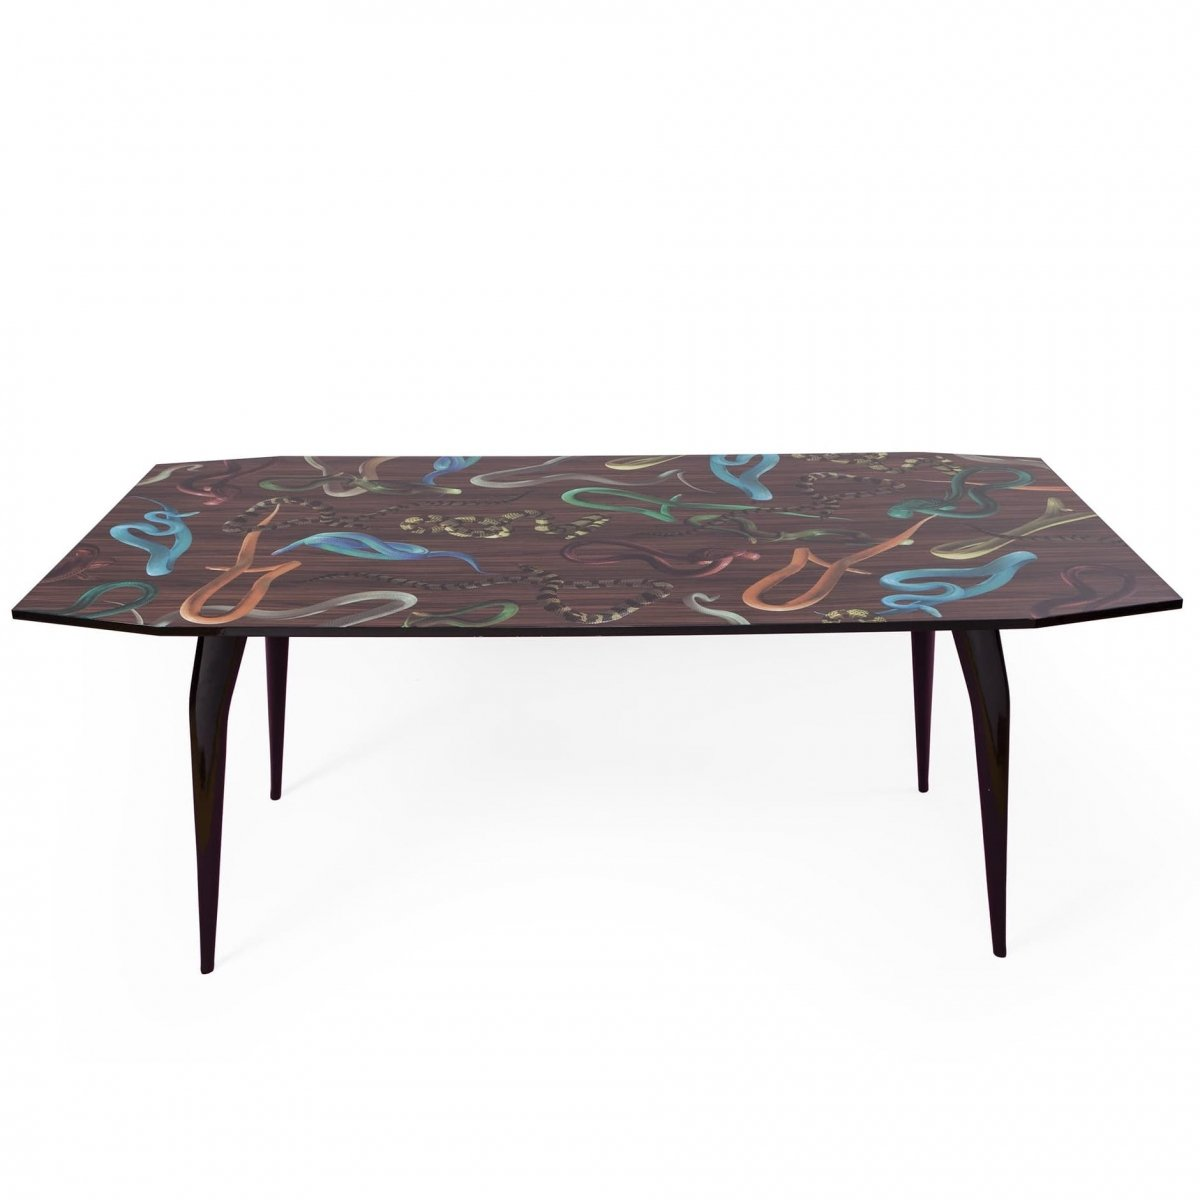 Обеденный стол Seletti Table Snakes On Wood